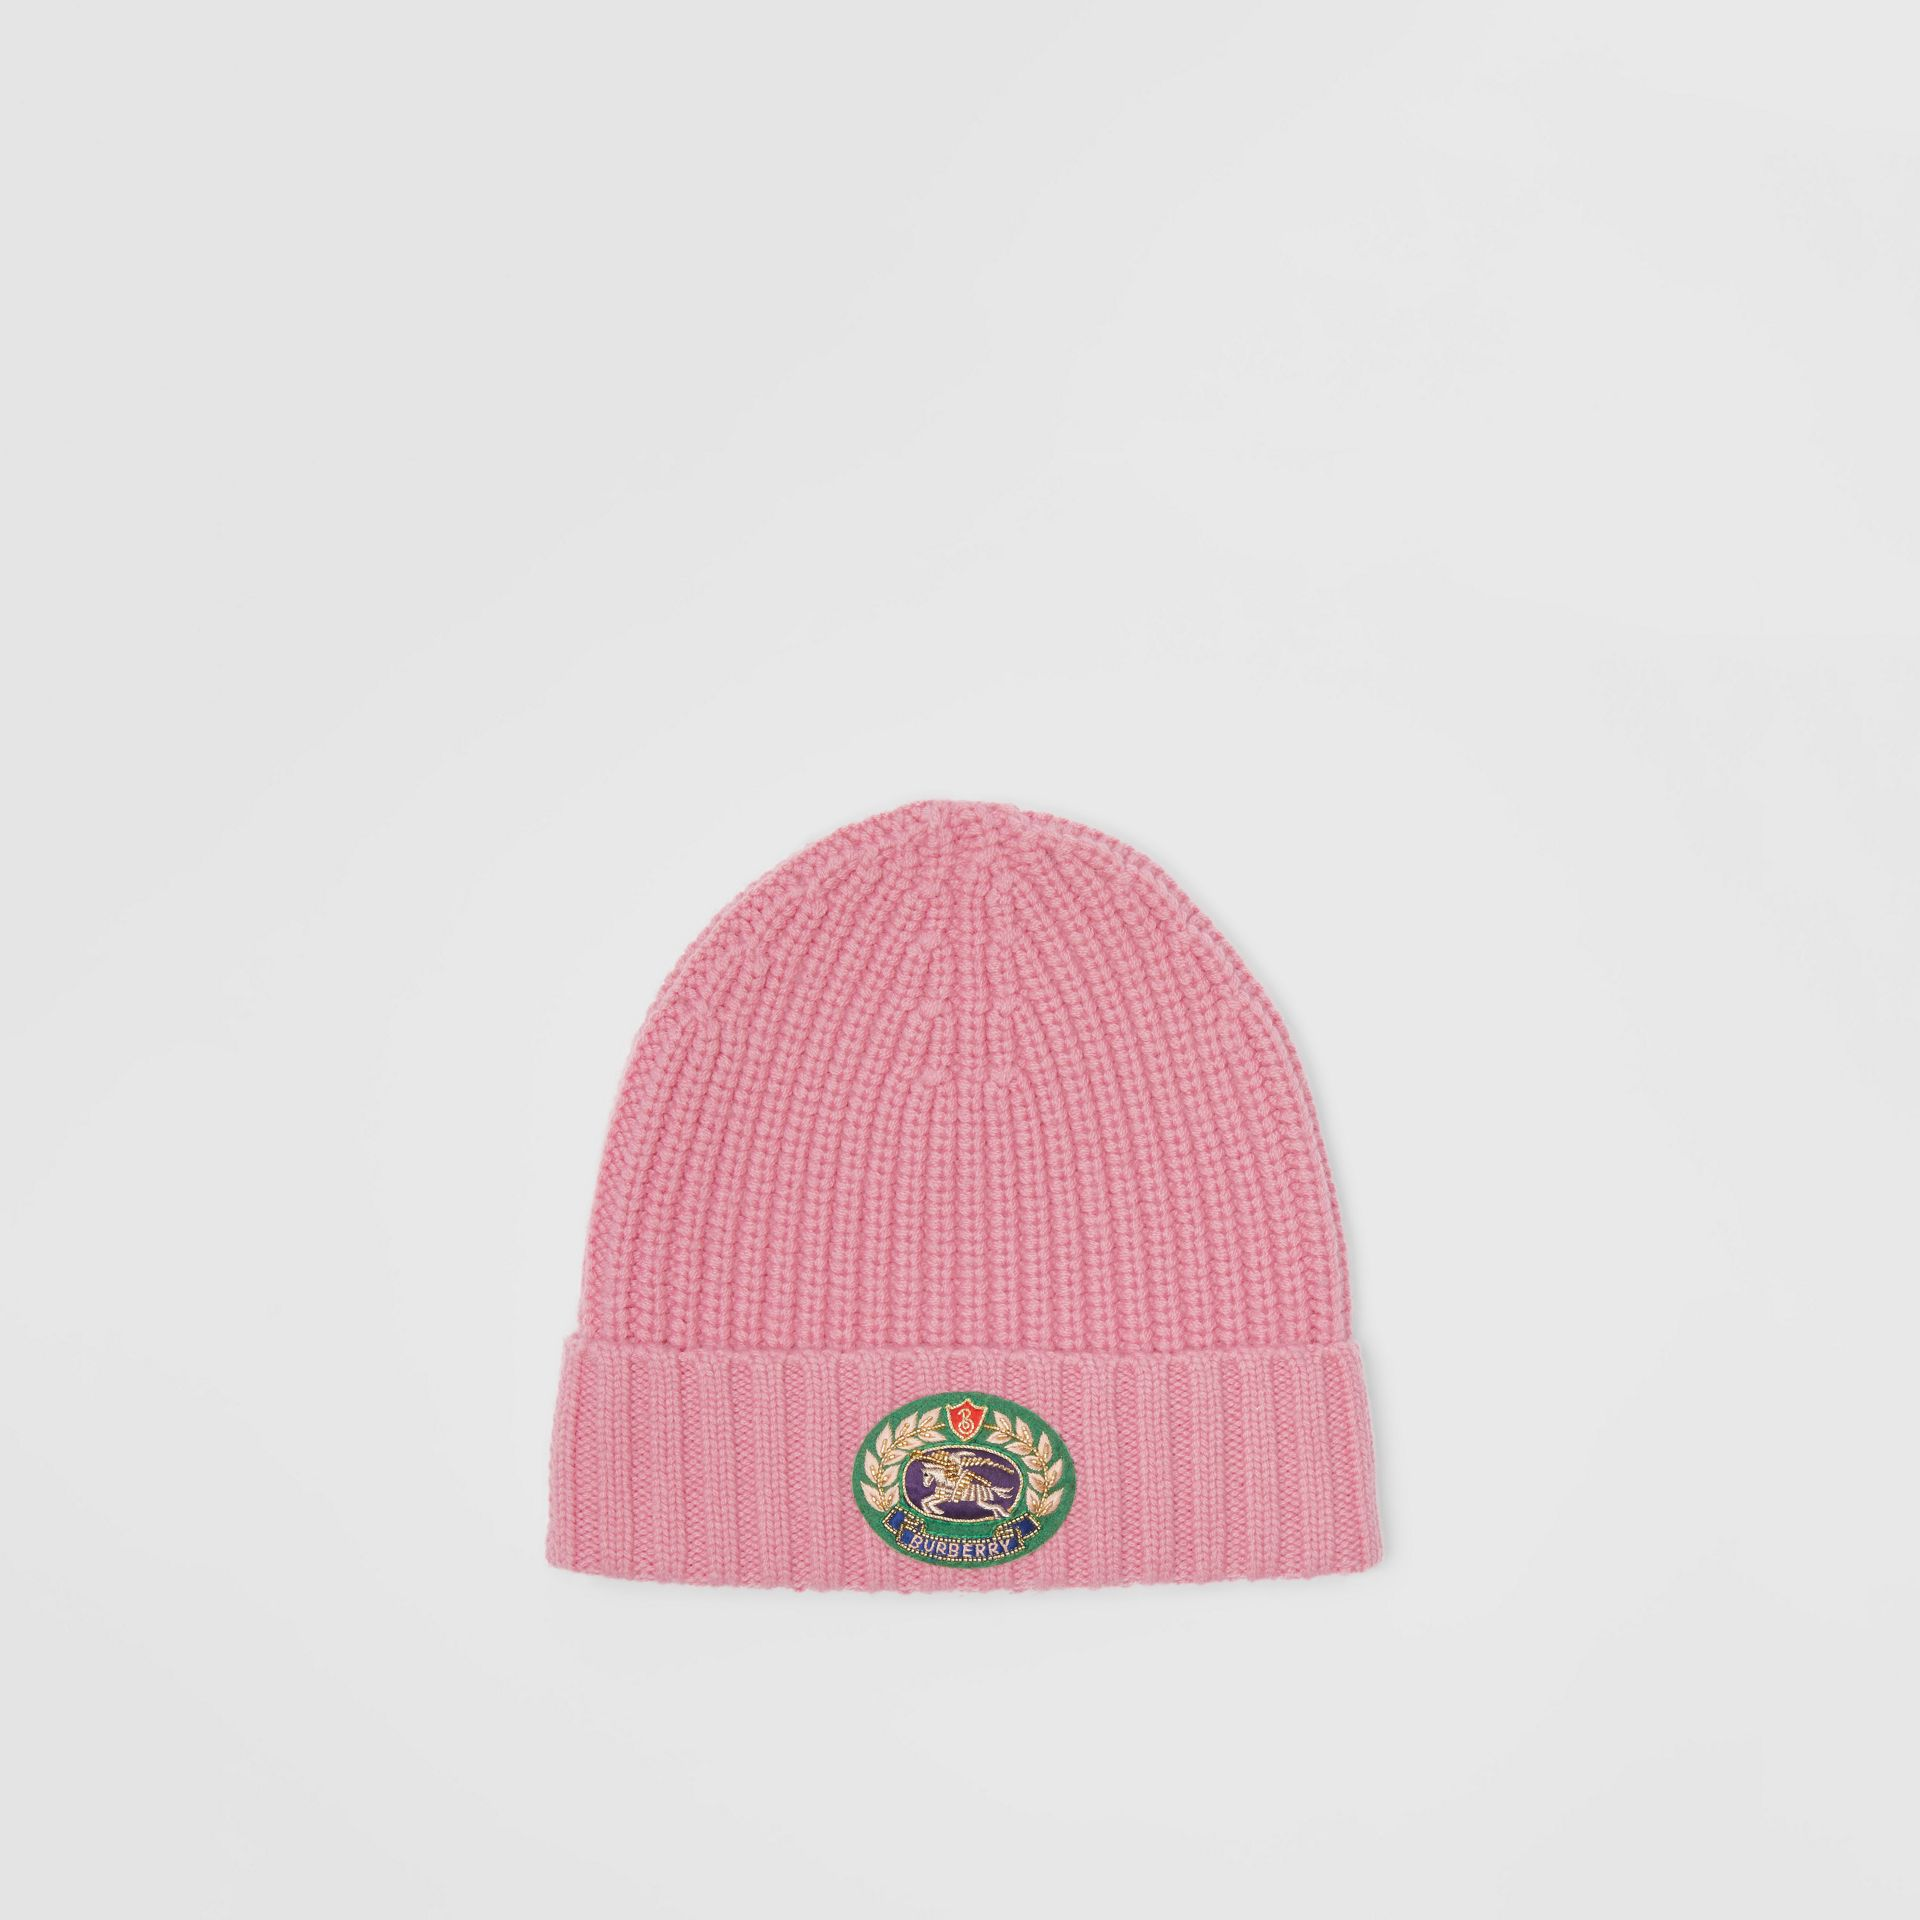 Embroidered Crest Rib Knit Wool Cashmere Beanie in Rose Pink | Burberry United Kingdom - gallery image 0